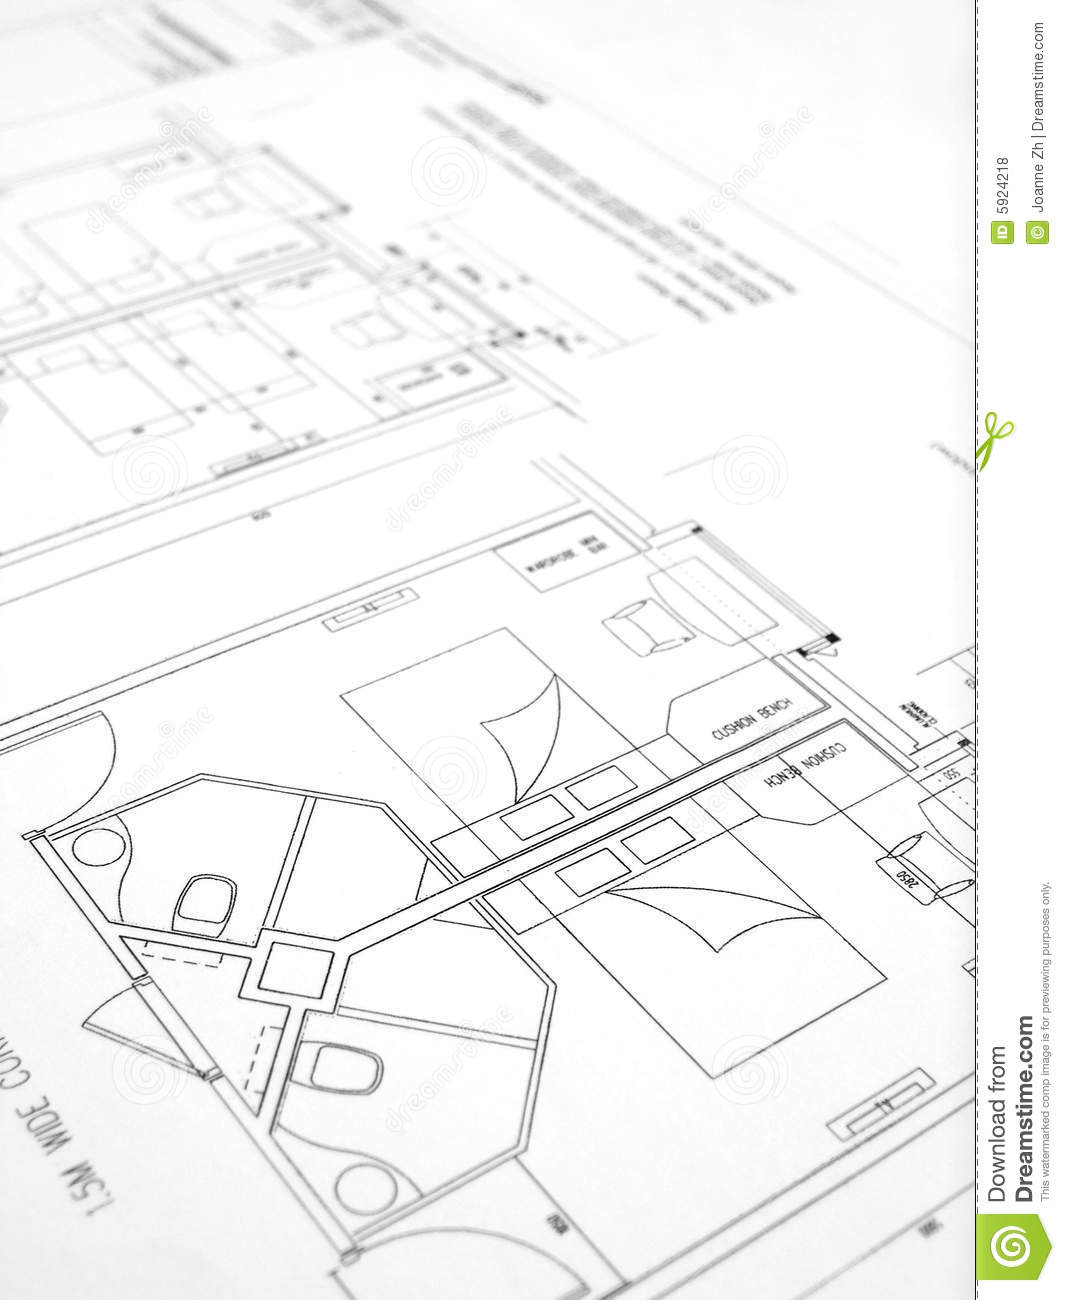 Building plans hotel construction royalty free stock for Plan construction